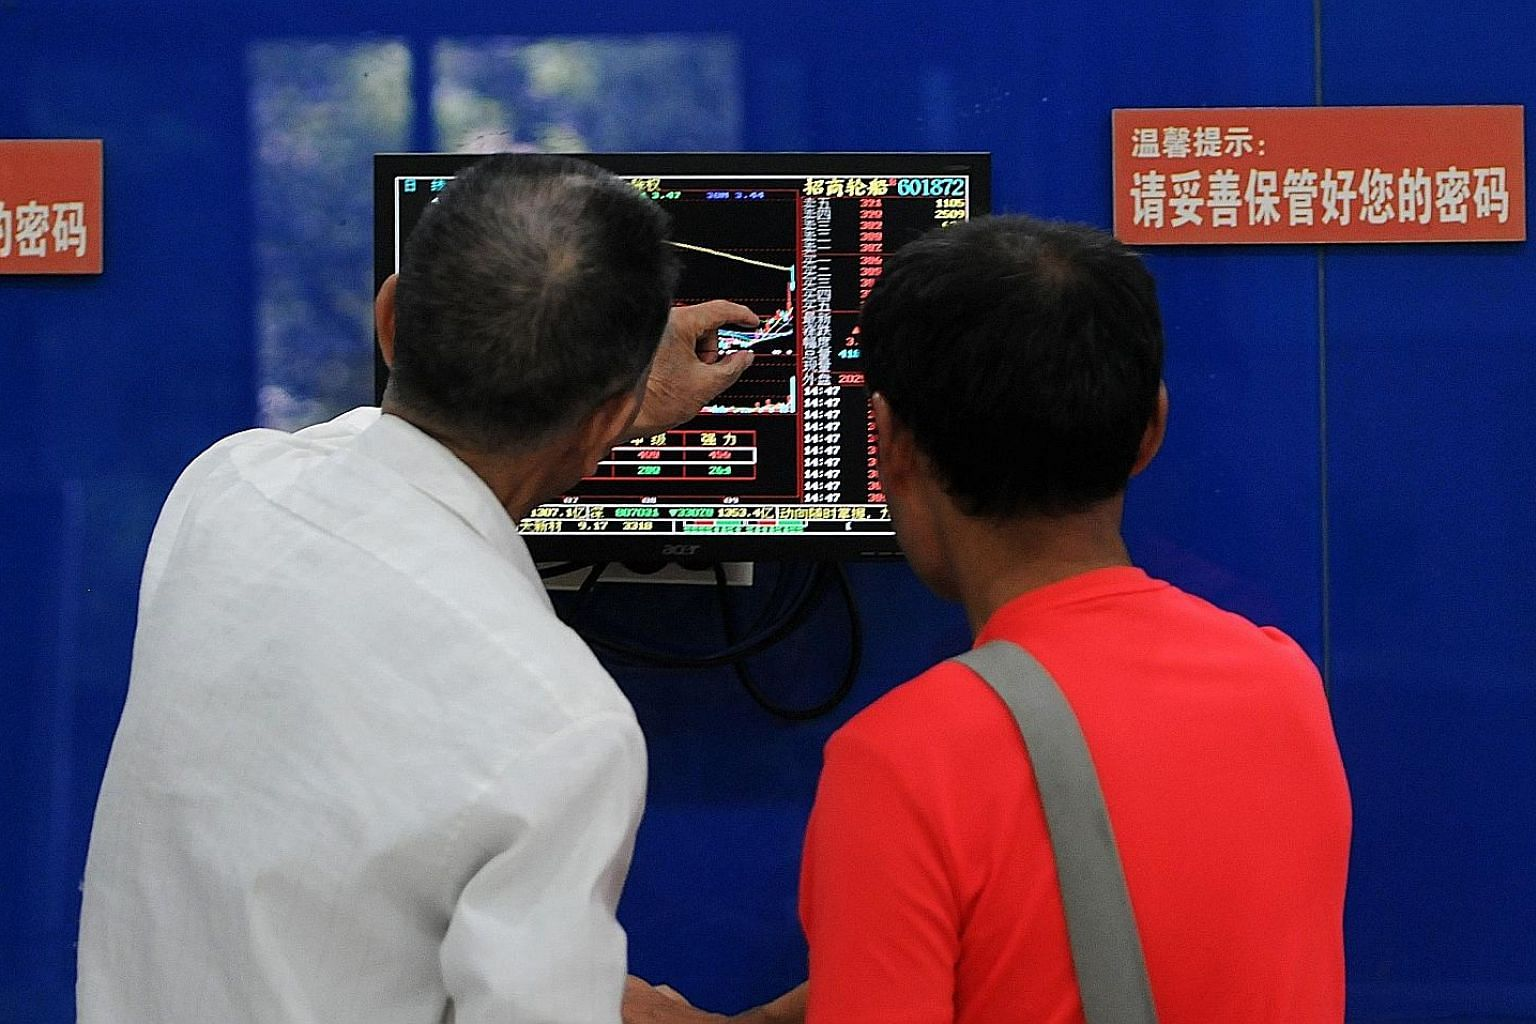 Investors monitoring stock prices in Jiujiang, Jiangxi province, yesterday. Foreigners yesterday dumped 9.7 billion yuan (S$1.96 billion) of A shares through exchange links with Hong Kong.